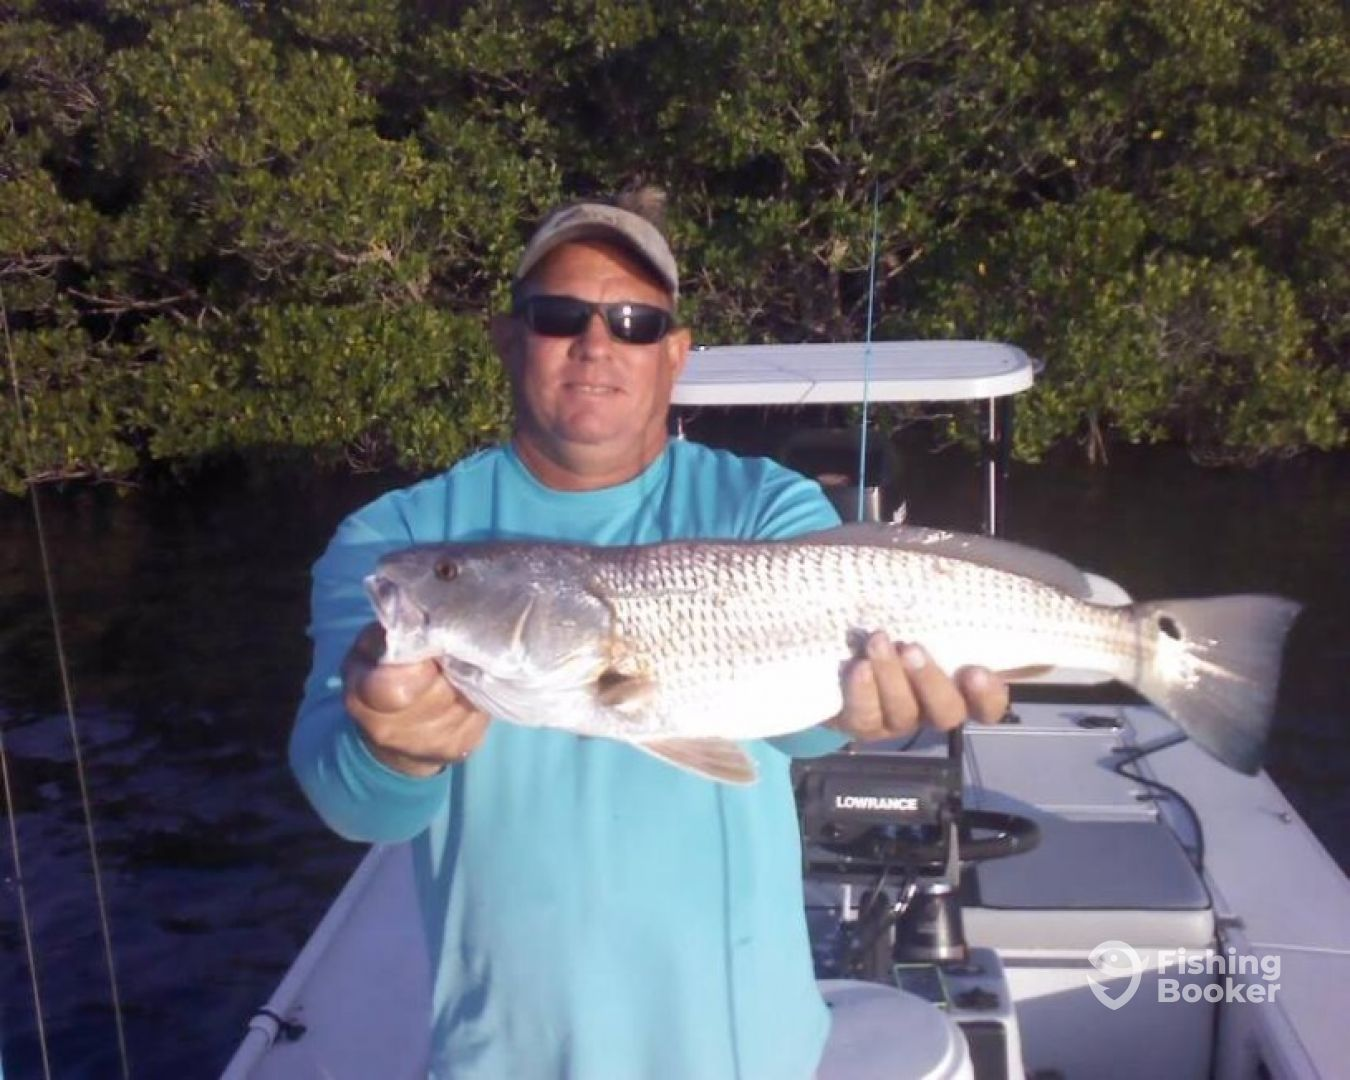 I just found Second Chance Charters Inc  on FishingBooker